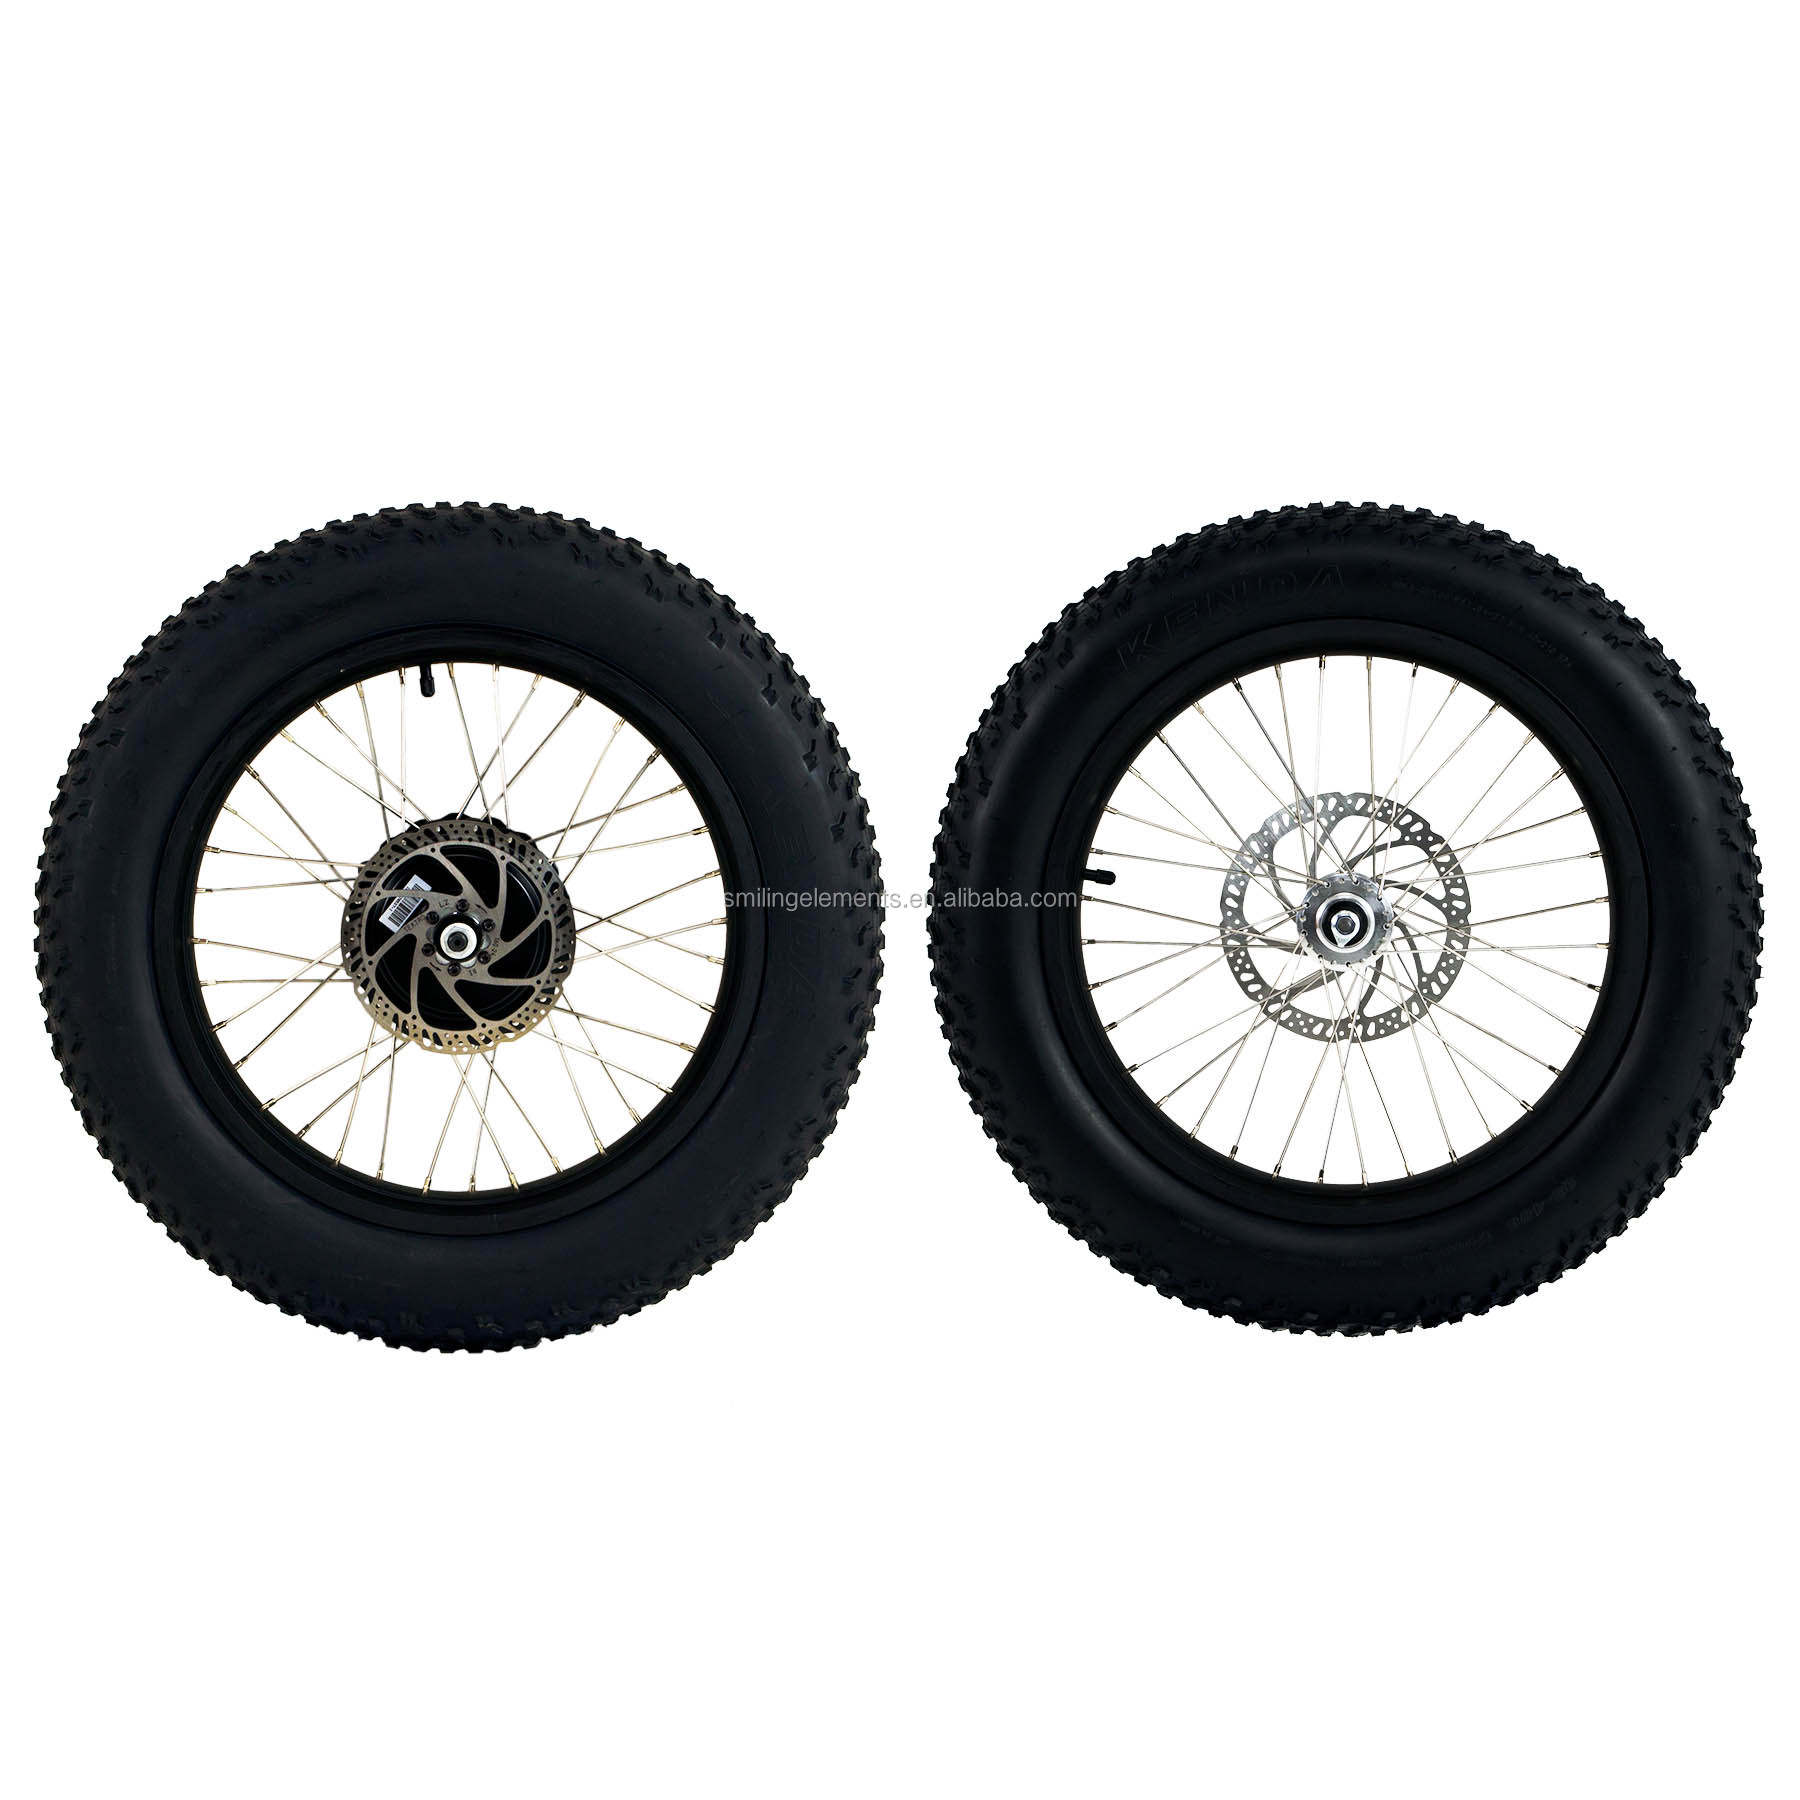 "OEM/ODM Taiwan KENDA 20x4.0"" Fat wheel set with 48V 500W Motor hub for Electric bicycle"